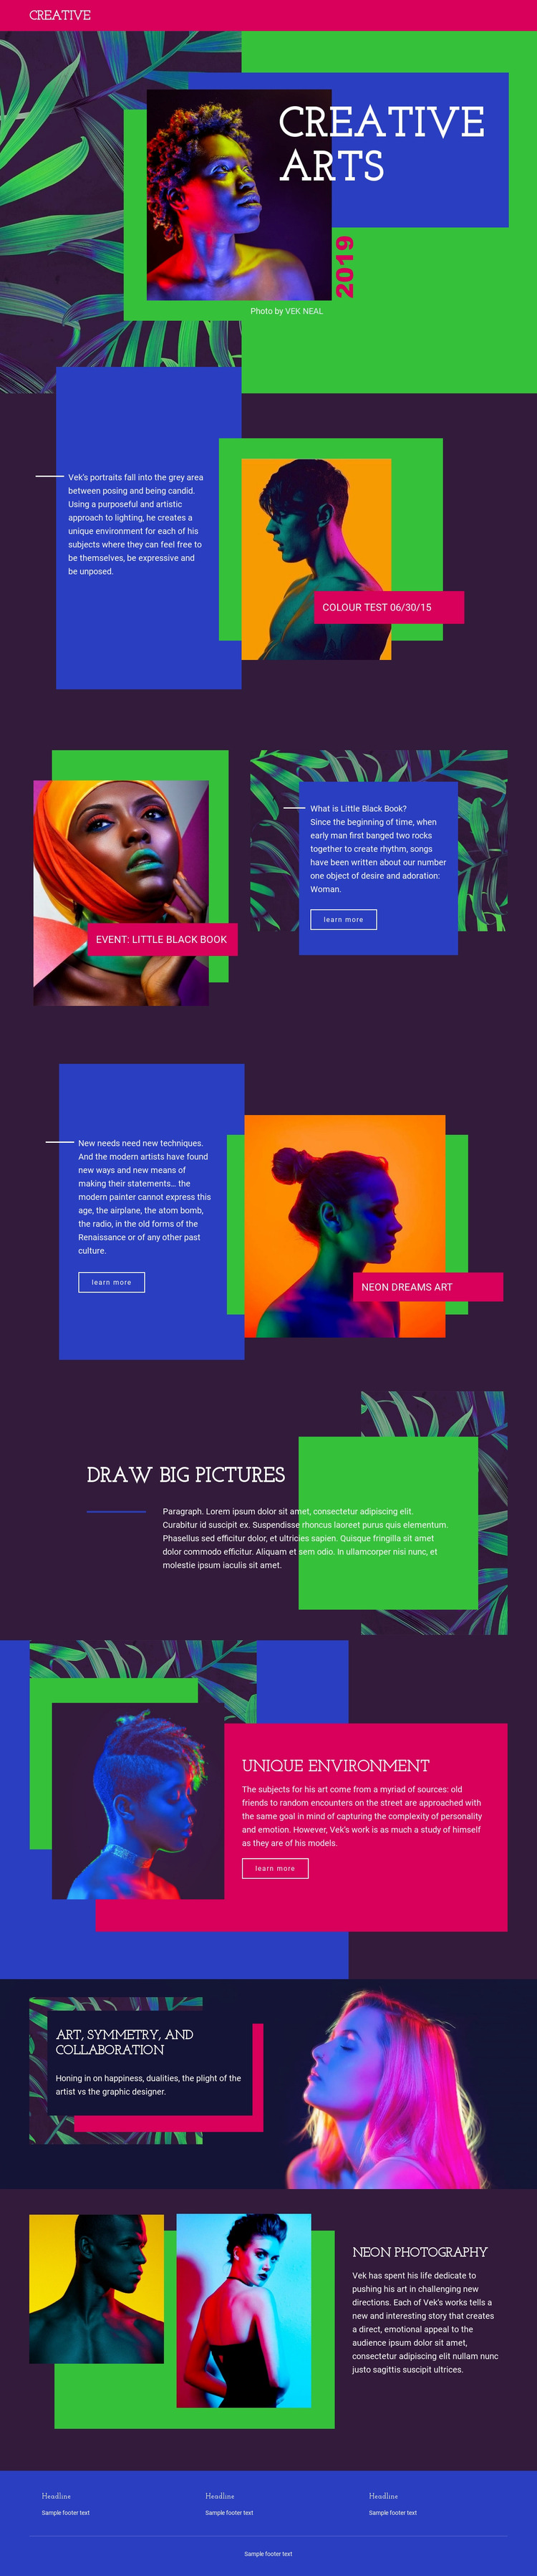 Creative Art Ideas Website Maker